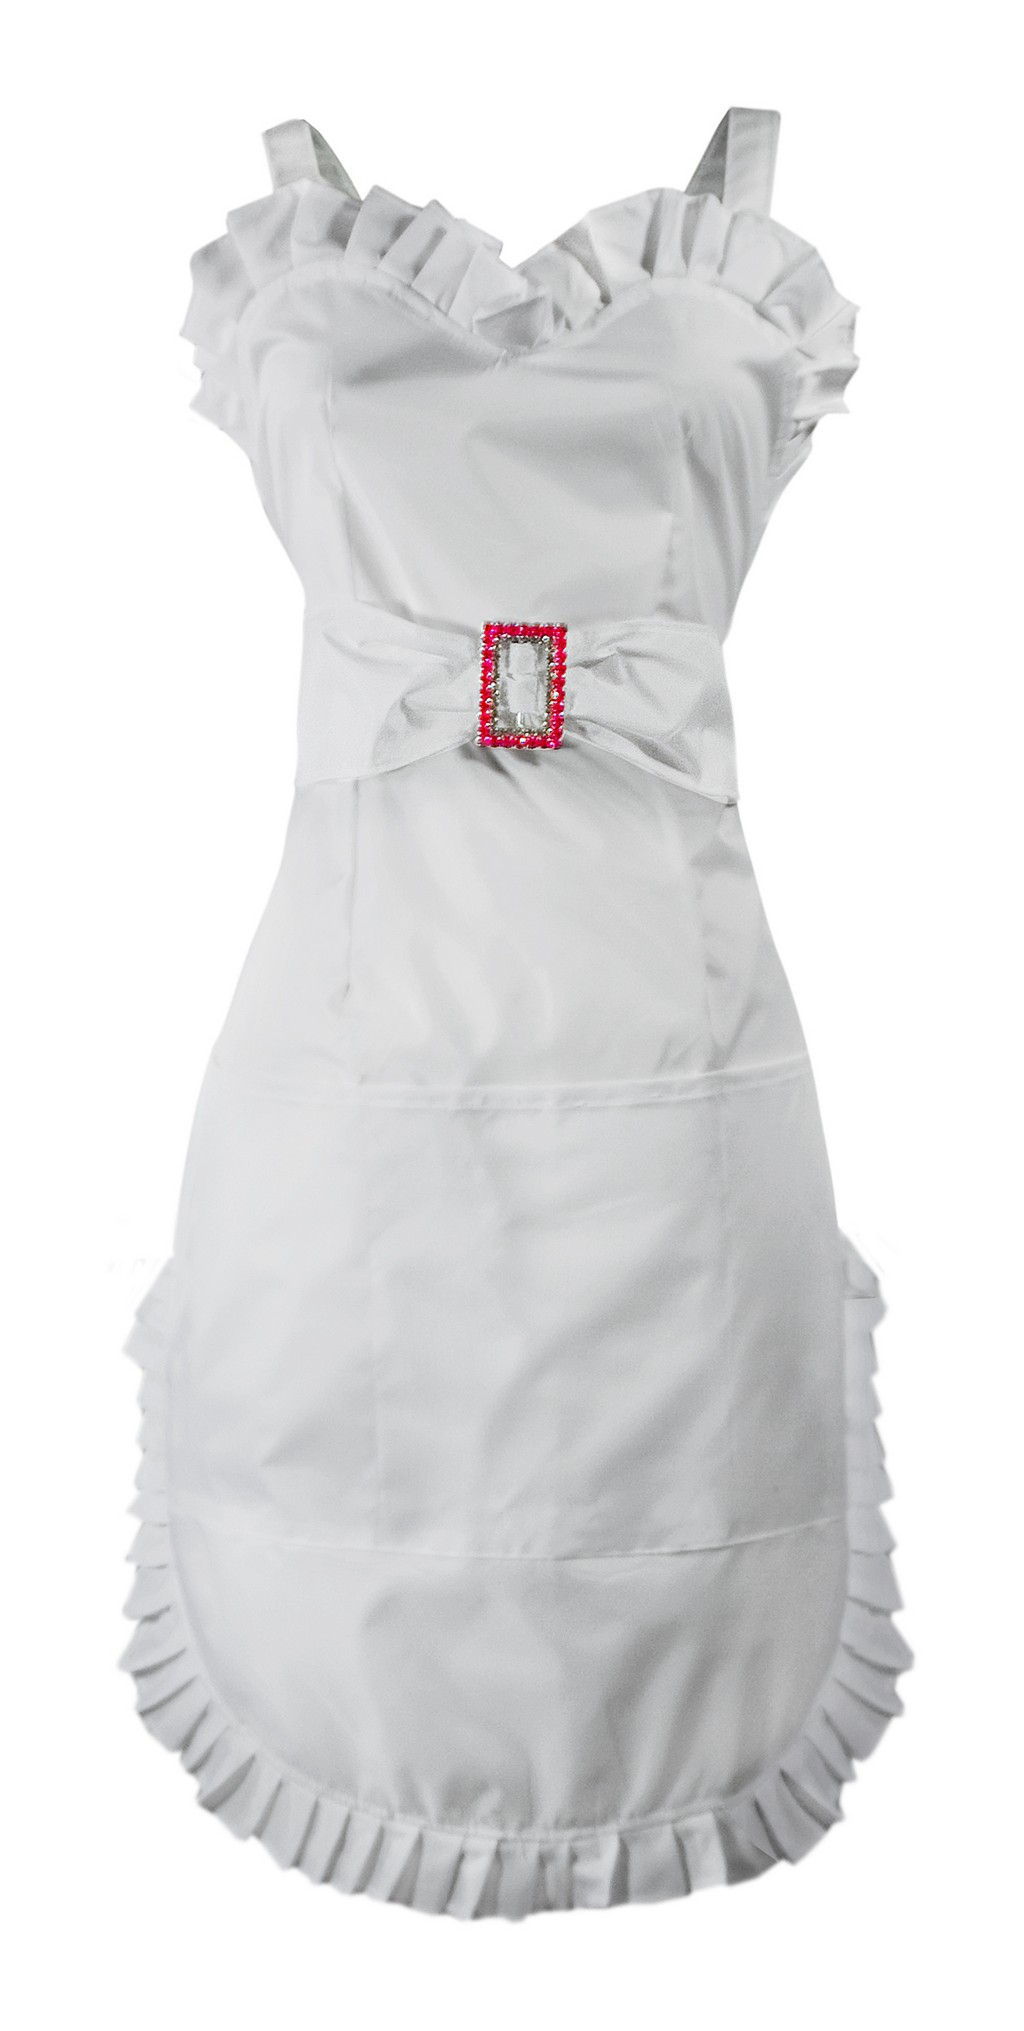 apron pin up, craft aprons, aprons for women, free vintage apron pattern